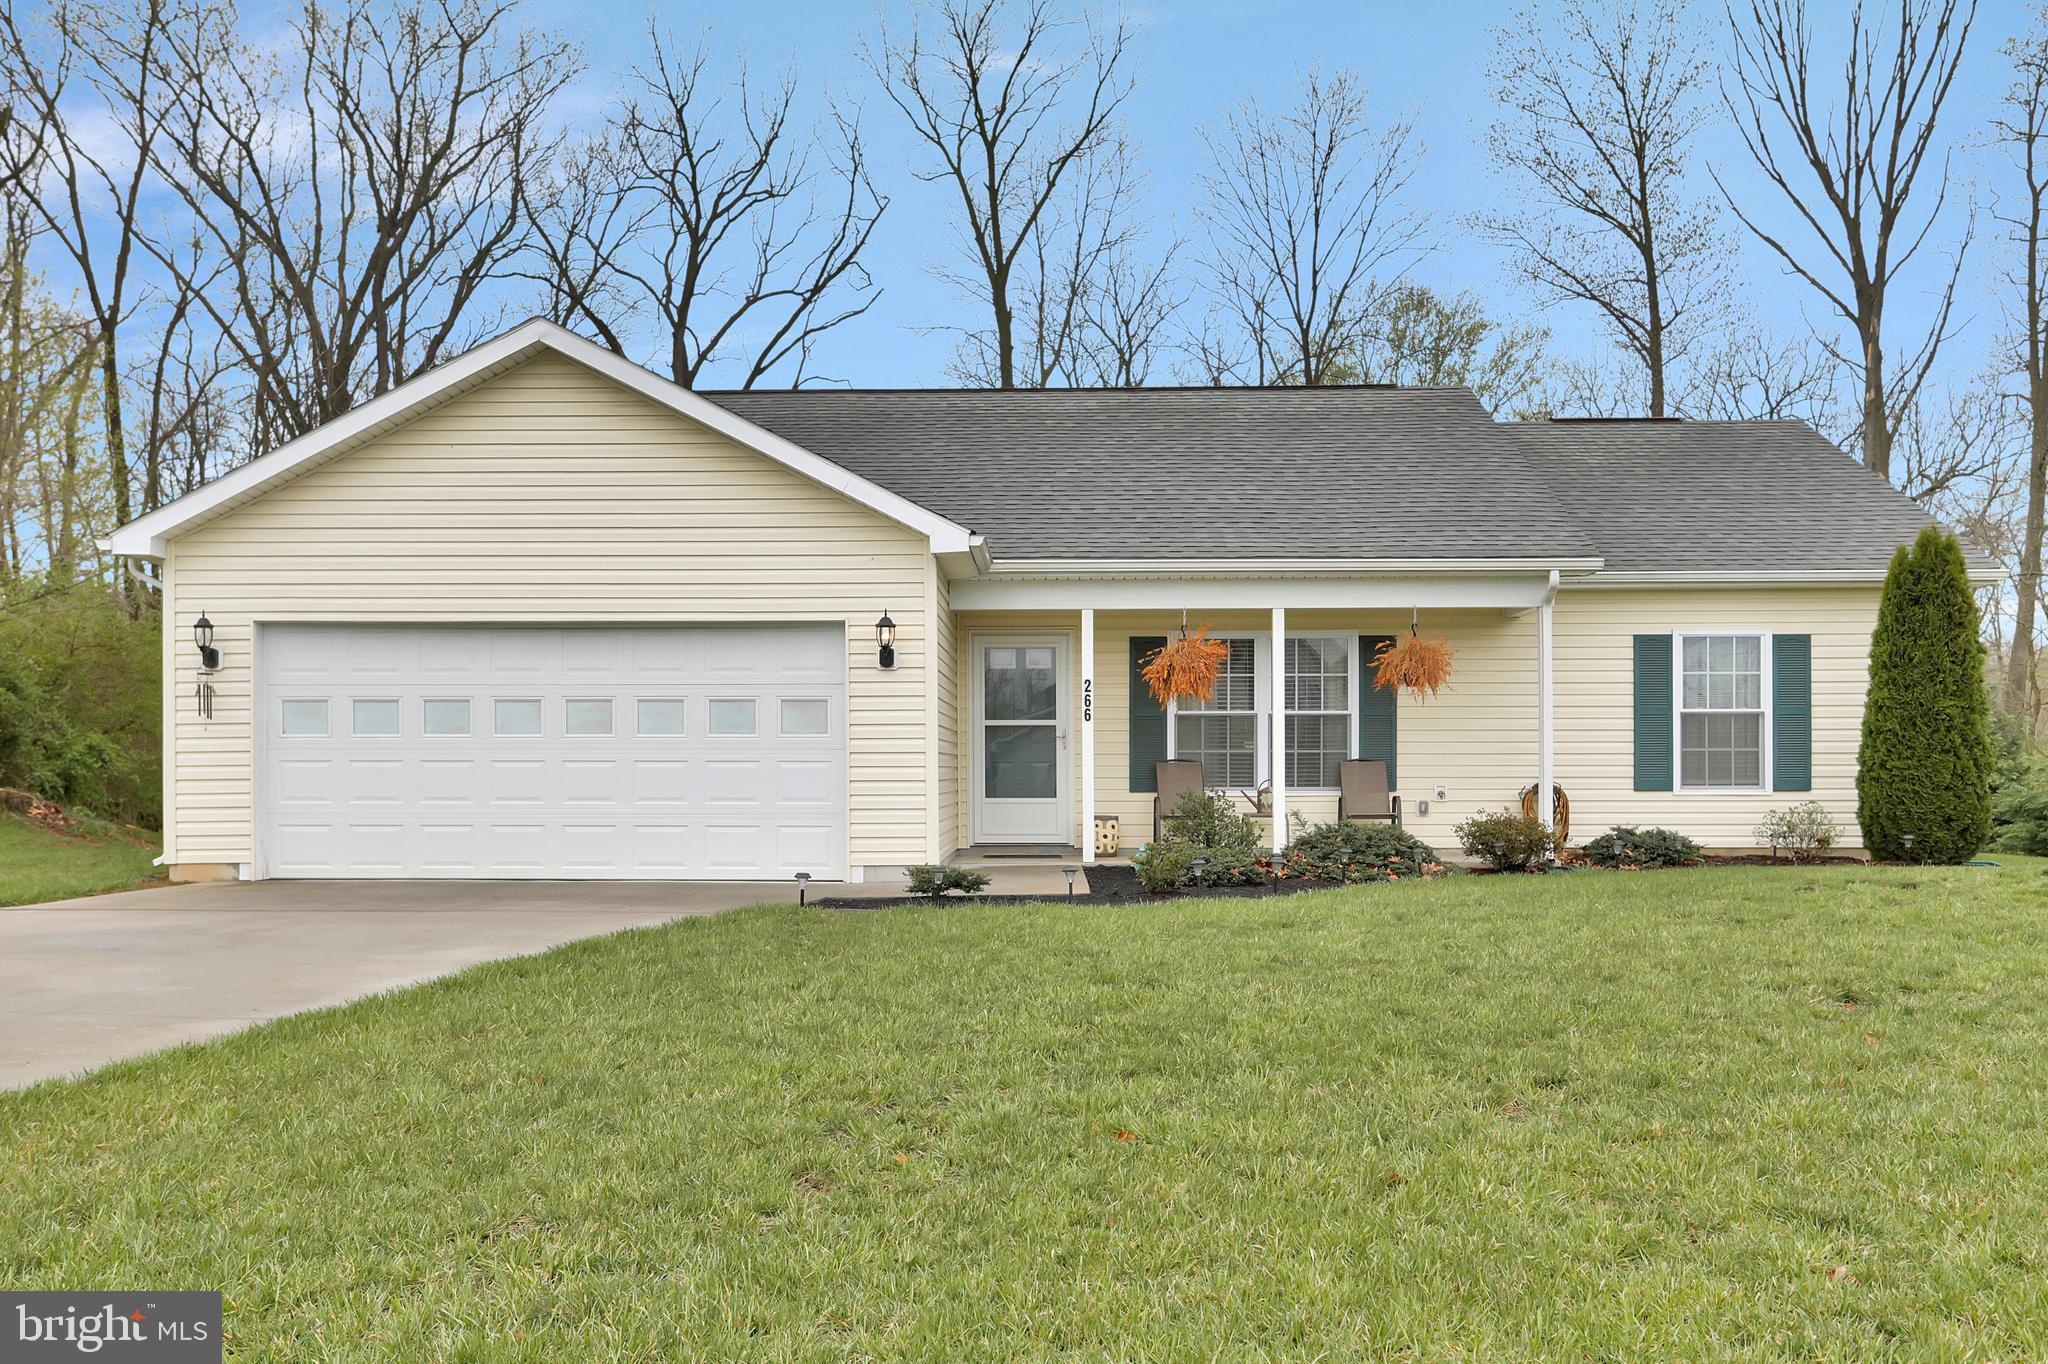 266 Close Dr, Martinsburg, WV, 25404